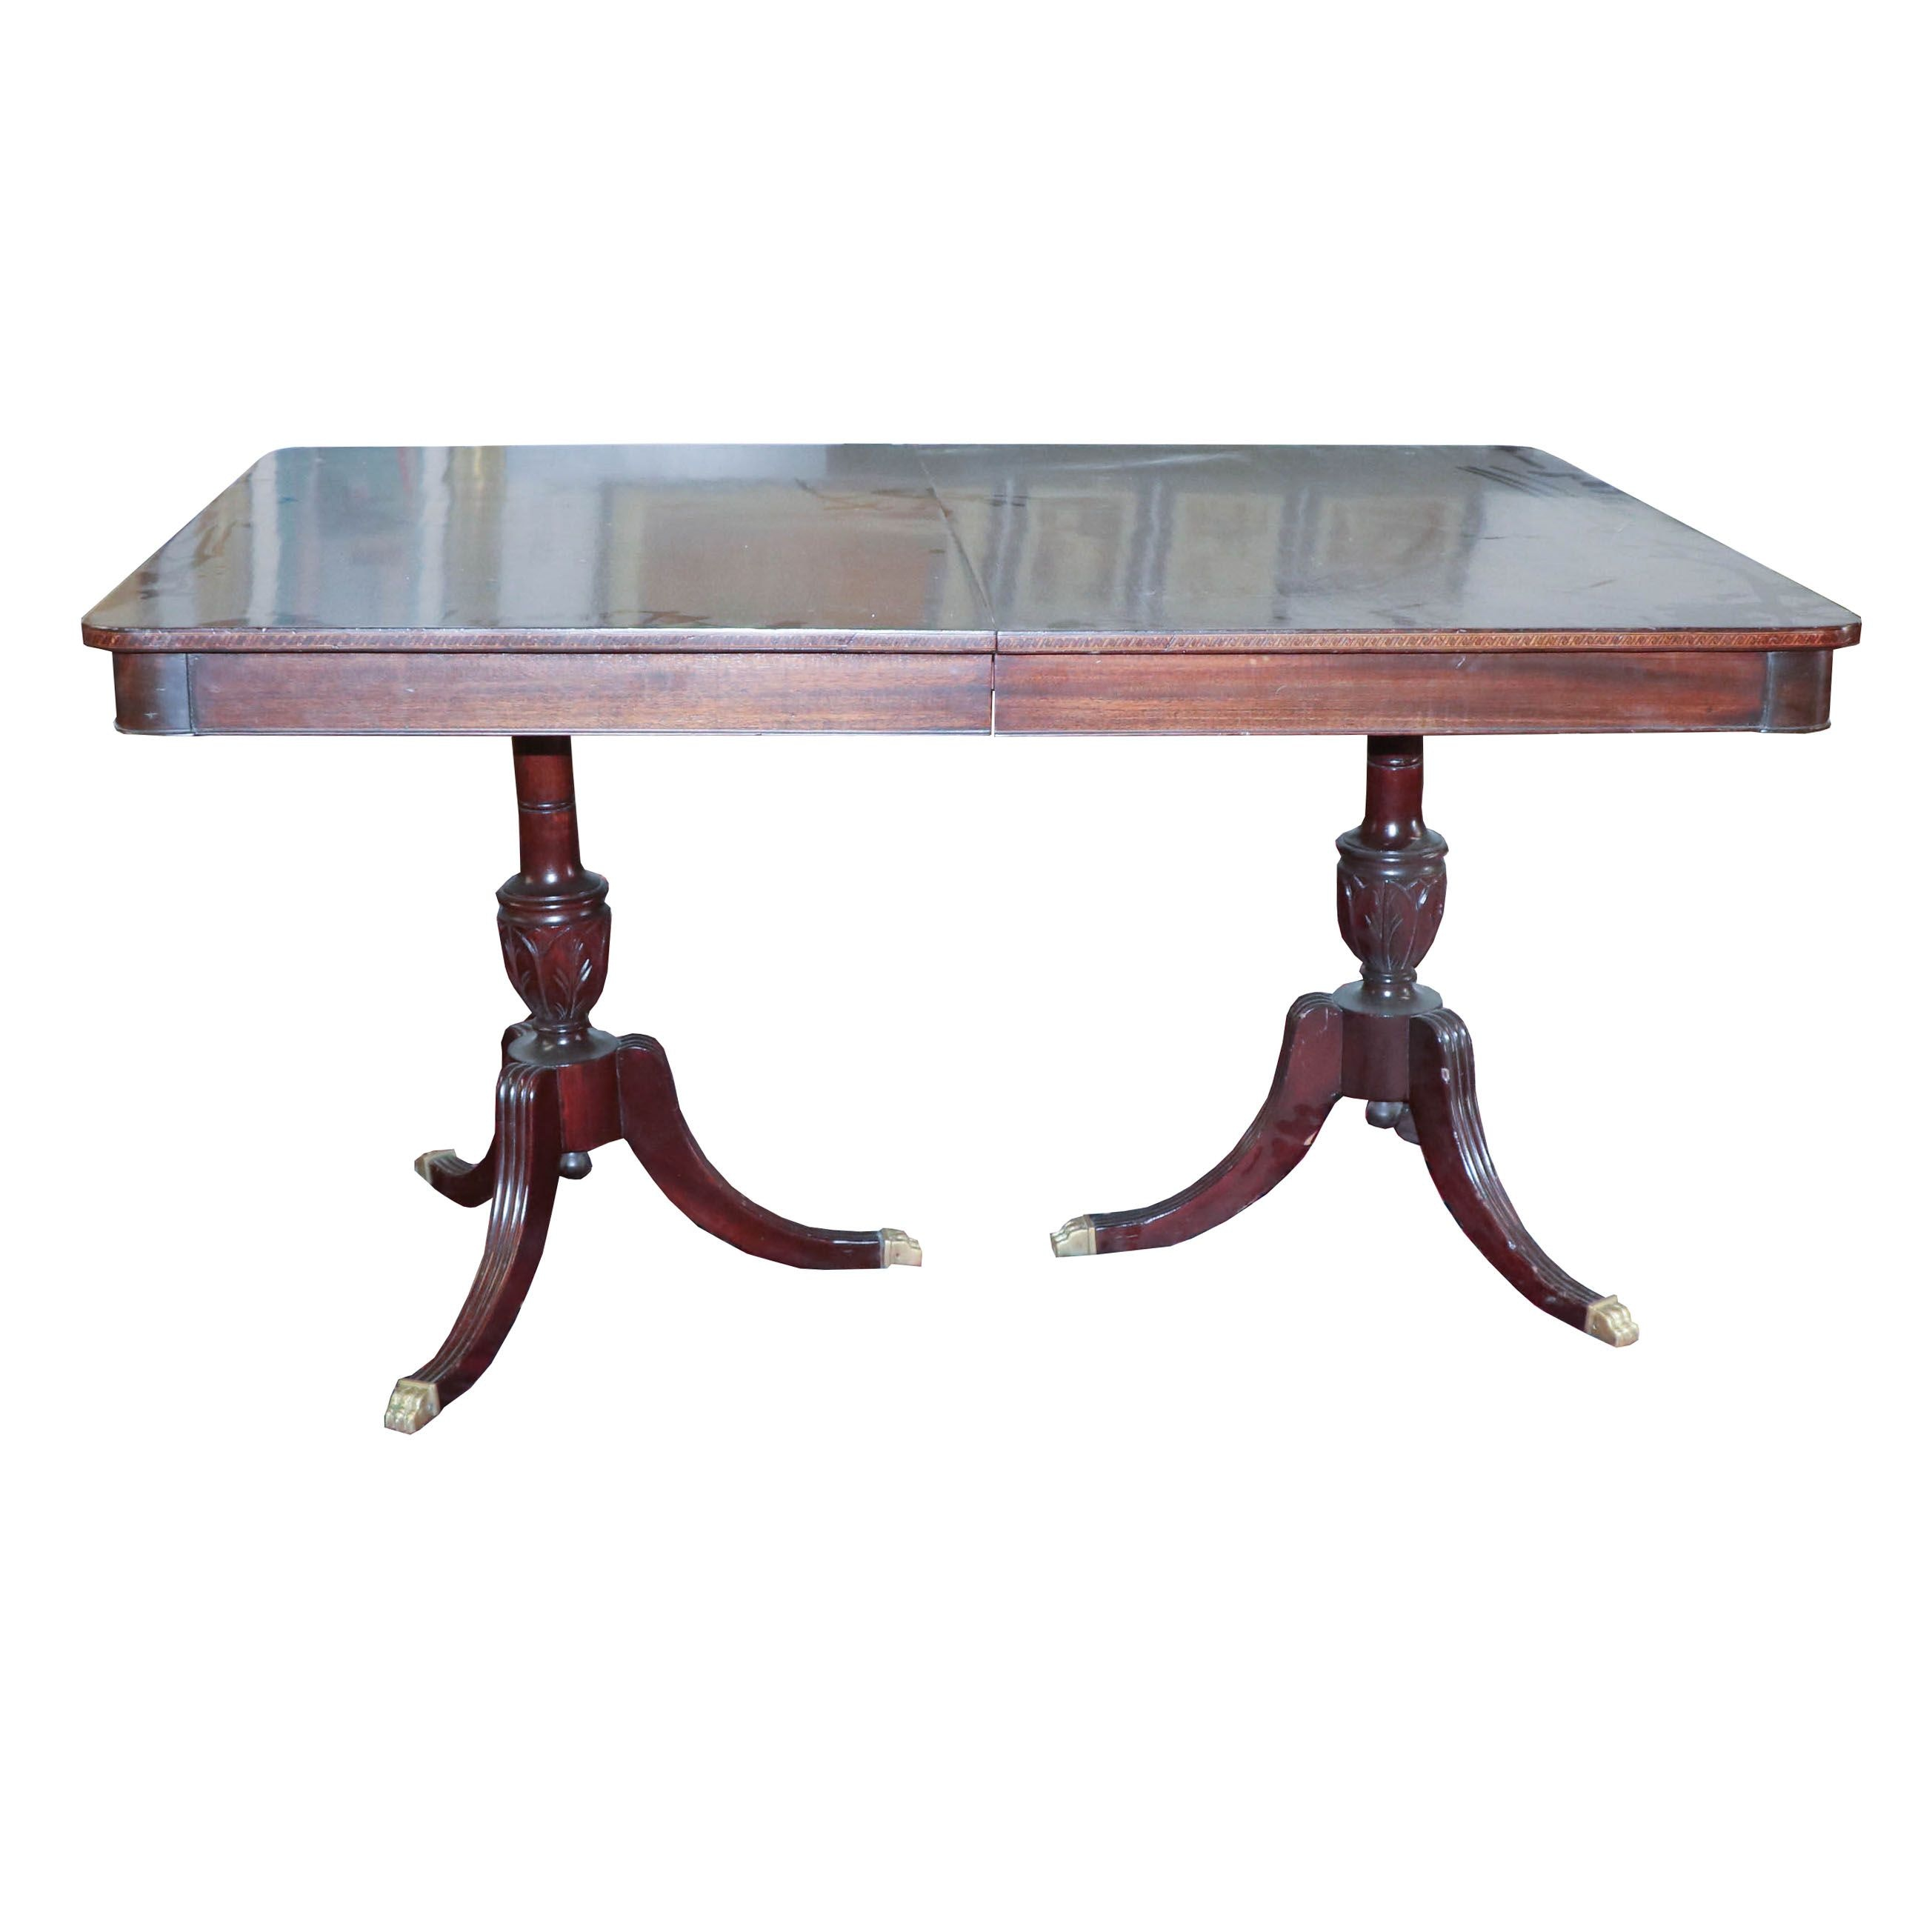 Federal Style Mahogany Dining Table with Extension Leaves, 20th Century